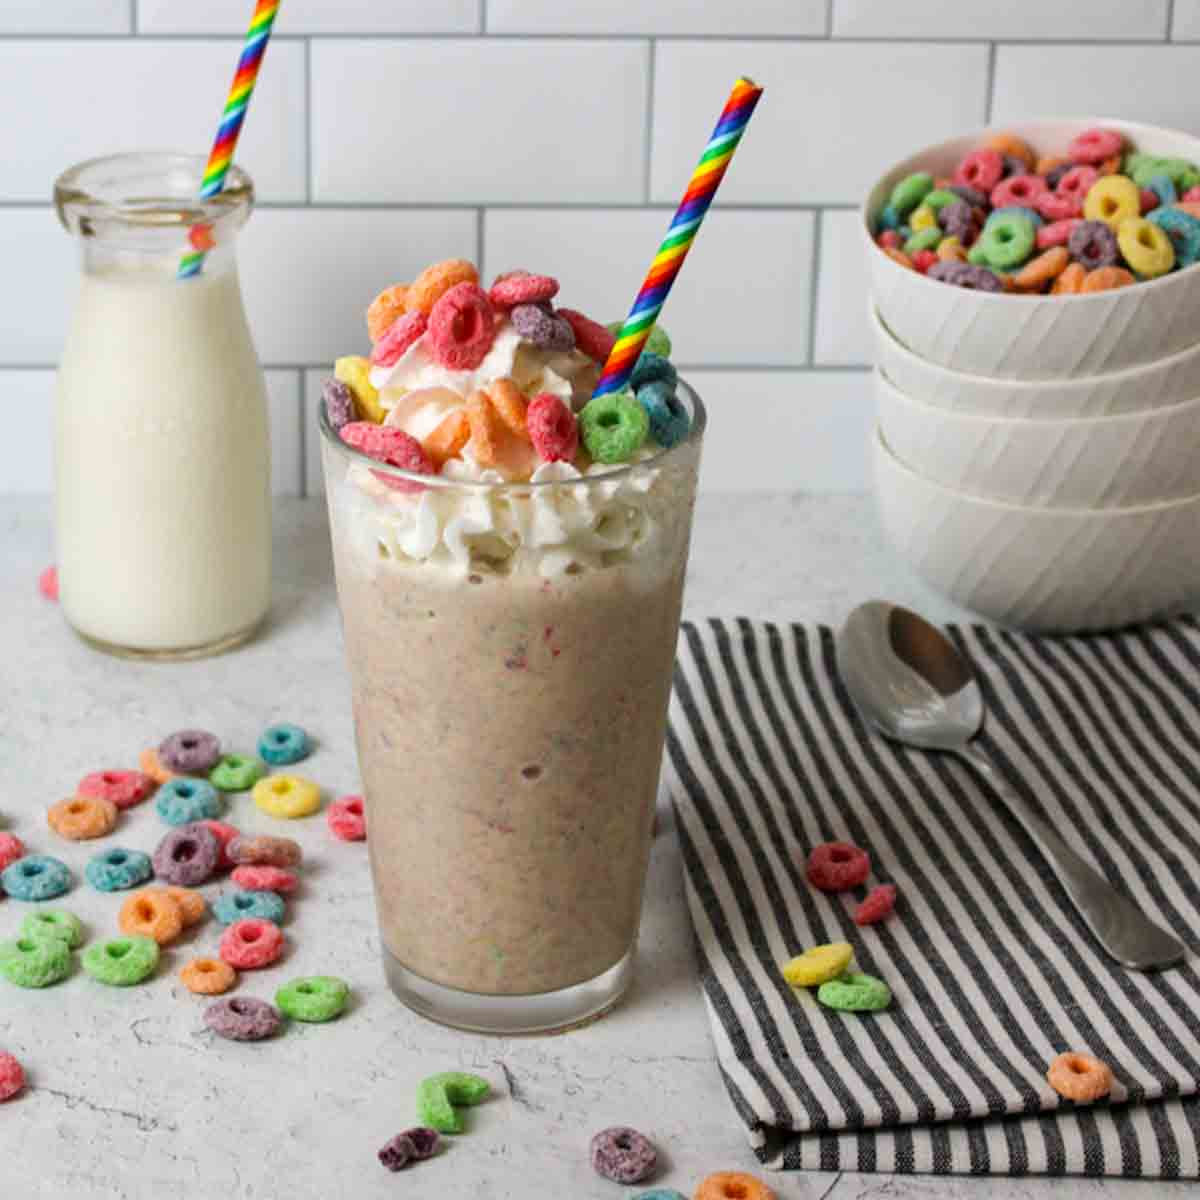 a glass full of fruit loops milkshake with scattered cereal around it and bowlf of creeal and bottle of milk in background